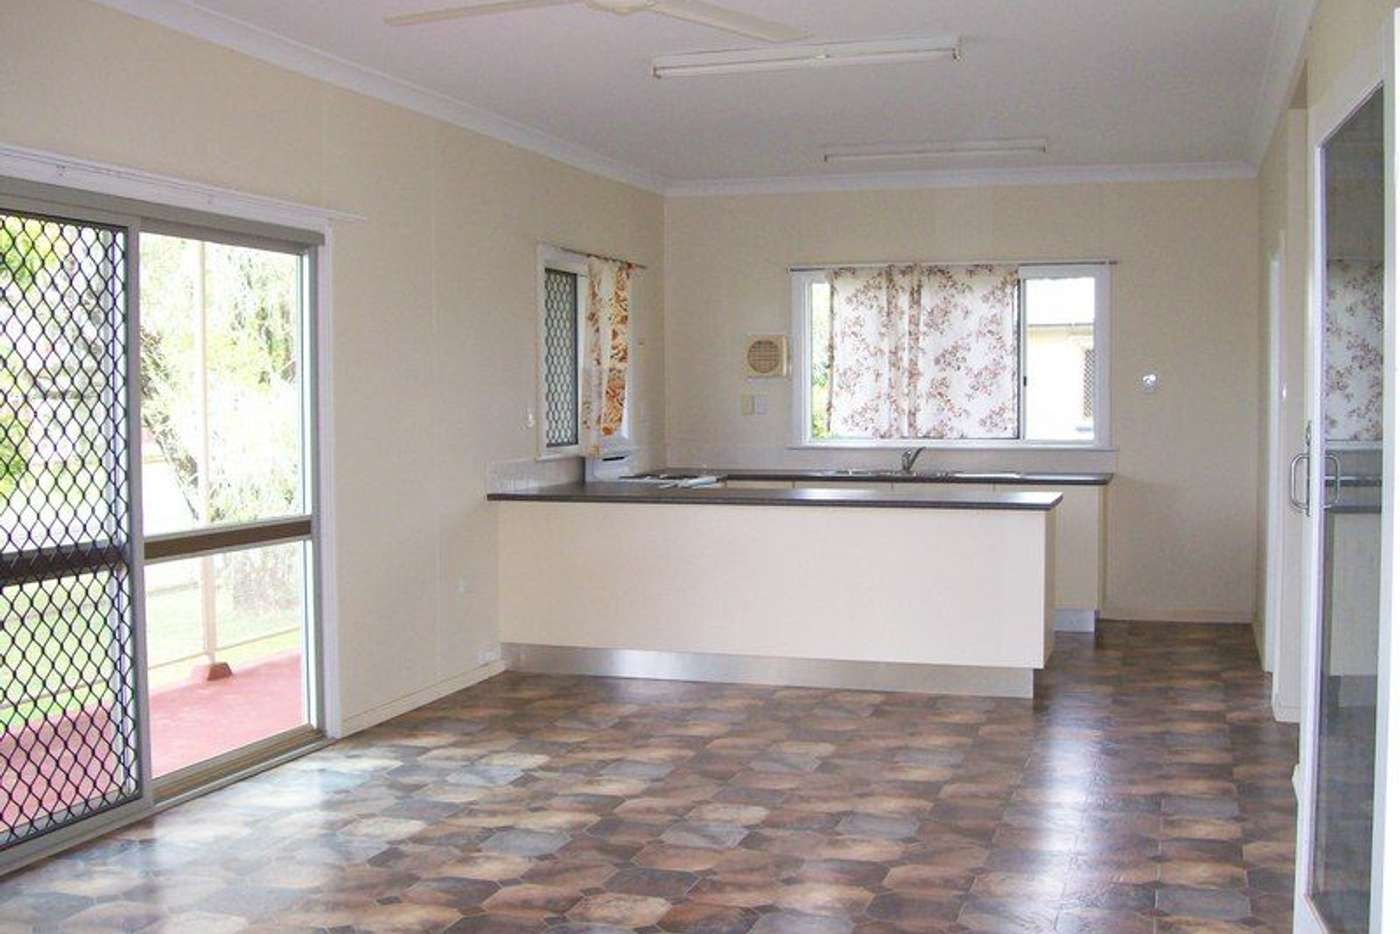 Main view of Homely house listing, 5 Cheshire Street, Wangan QLD 4871